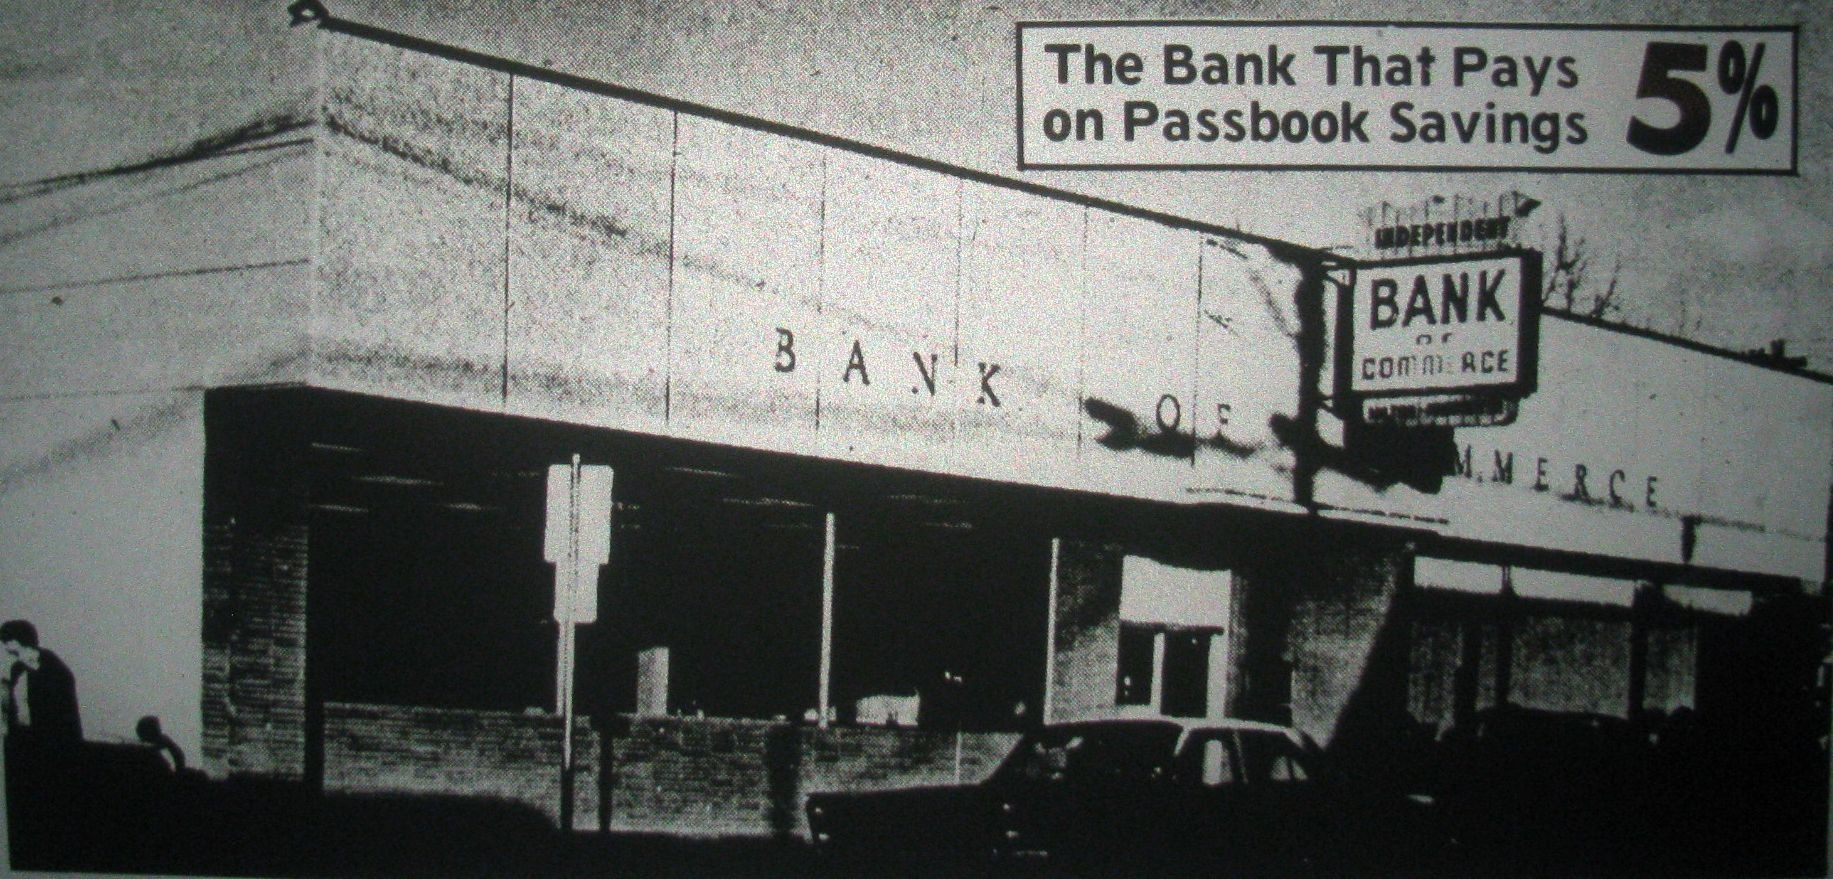 Bank of Commerce 1974.JPG